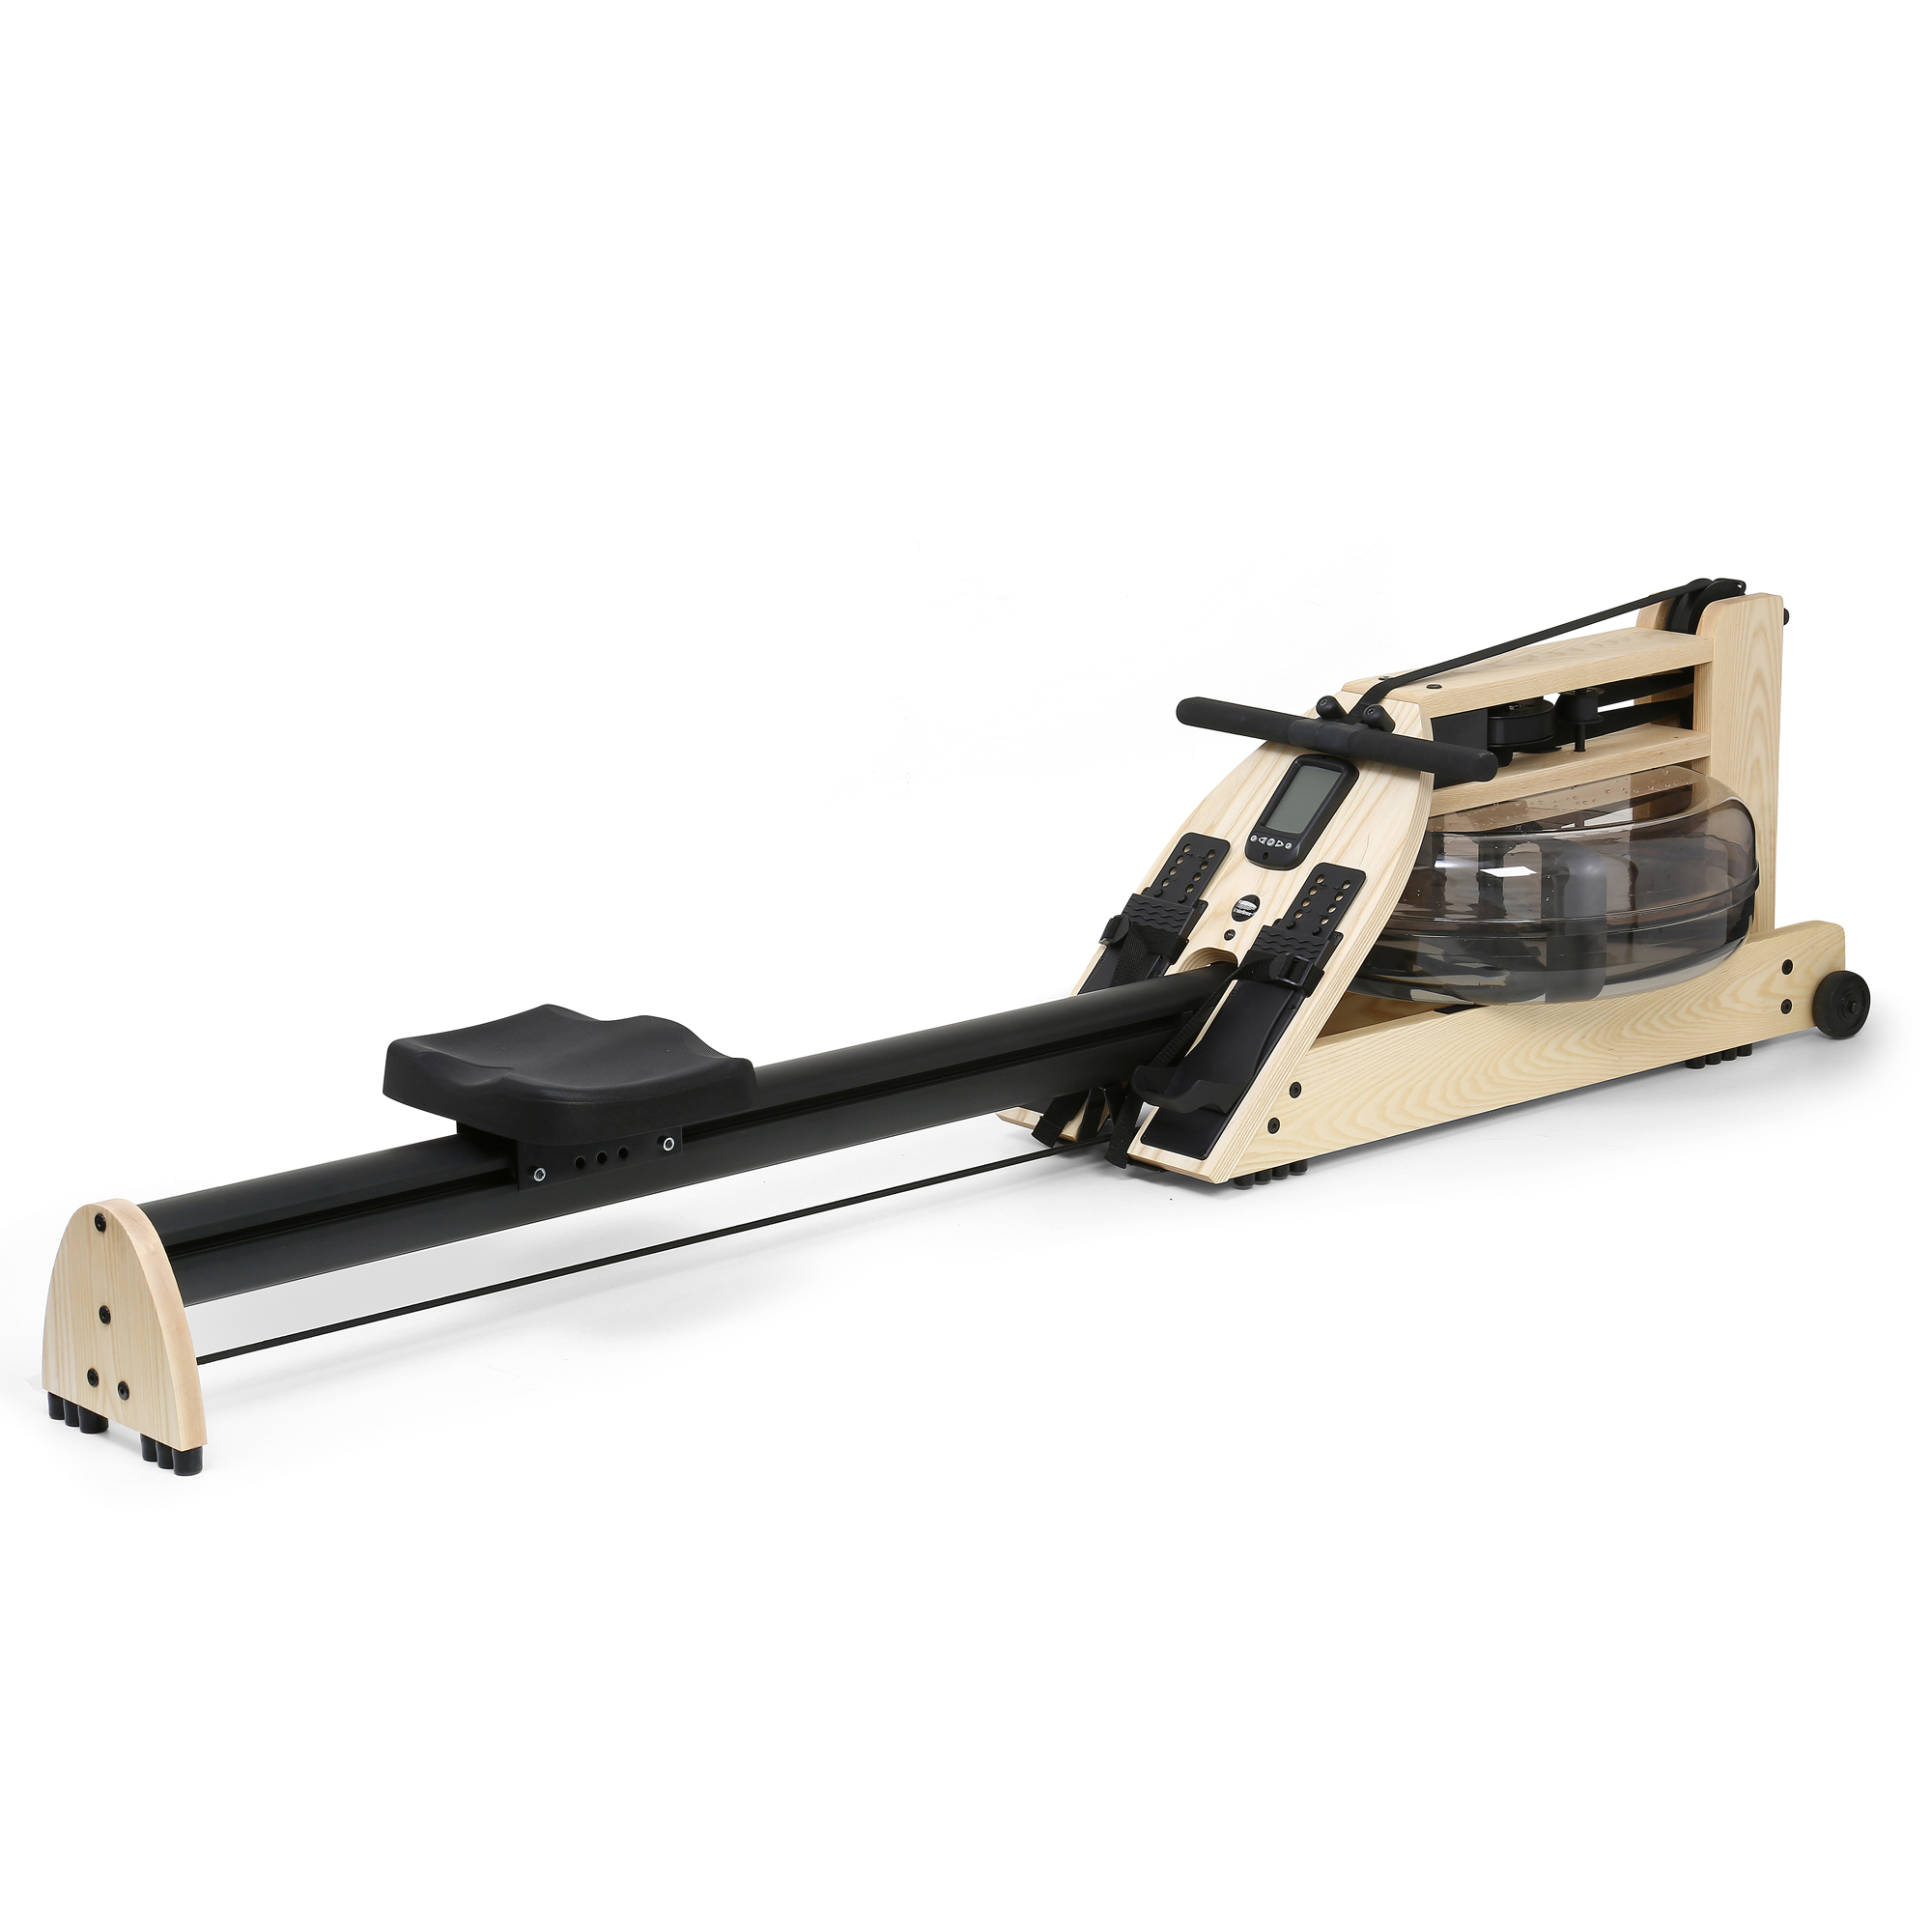 WaterRower A1 Home Rowing Machine